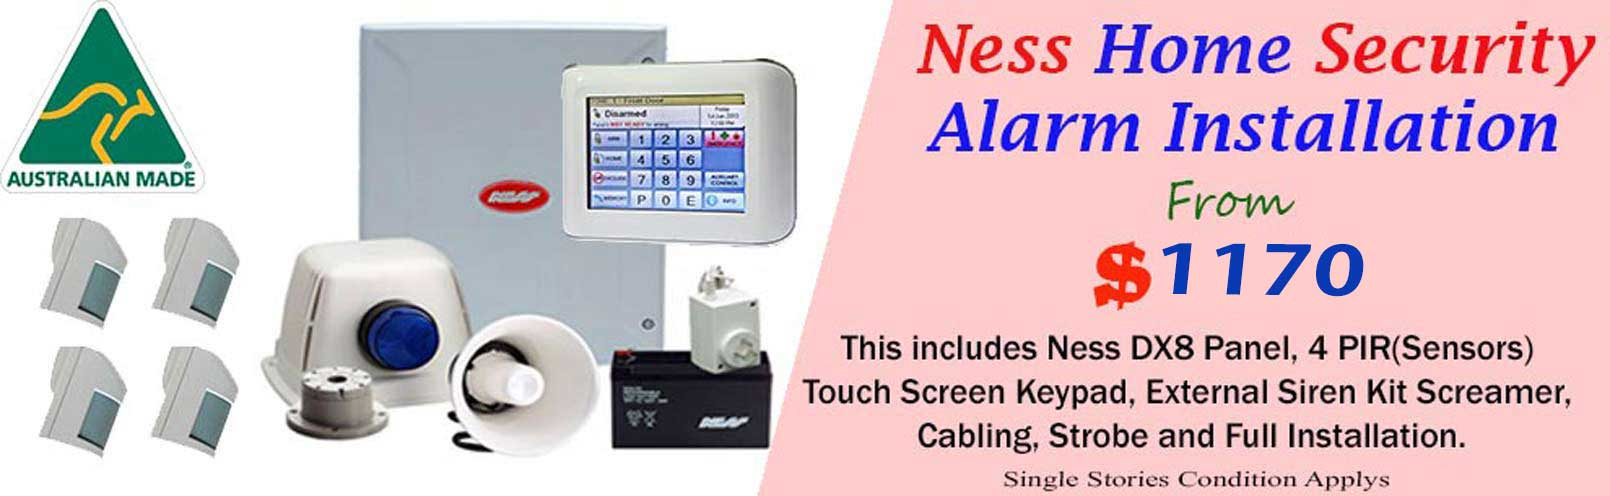 Ness Home Security Alarm